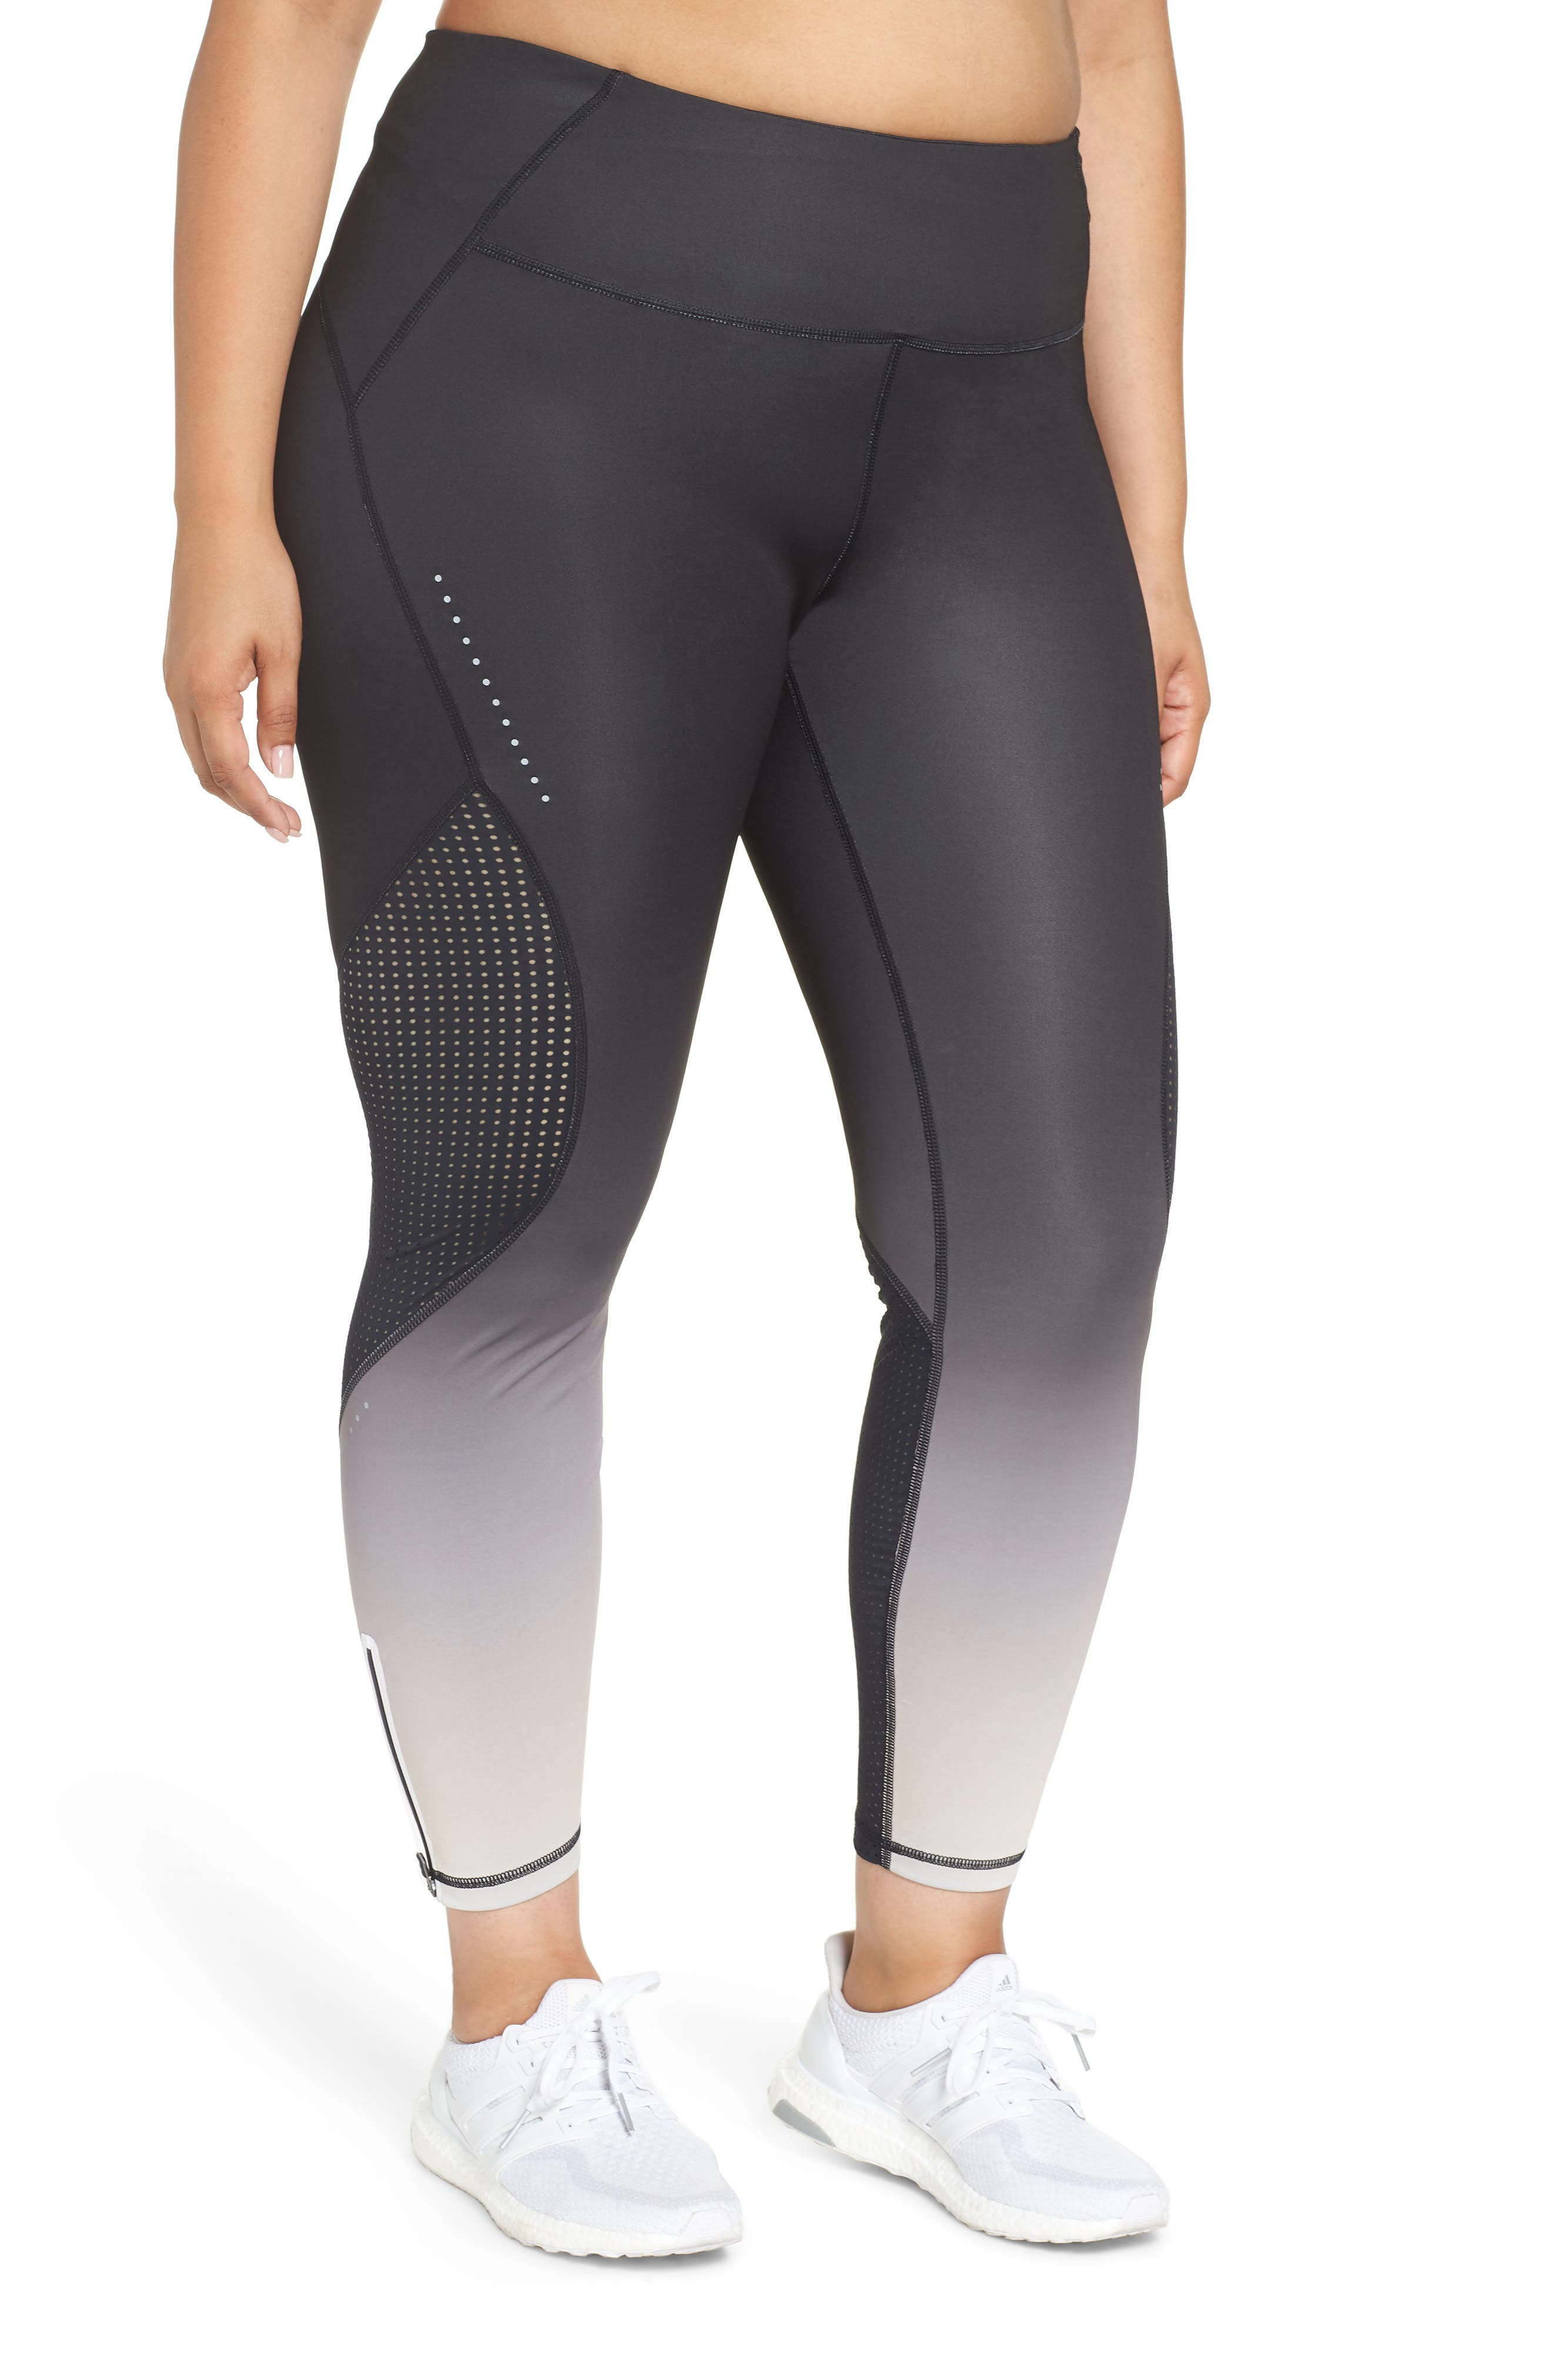 Protech V.3 Leggings,                         Main,                         color, OMBRE TAUPE